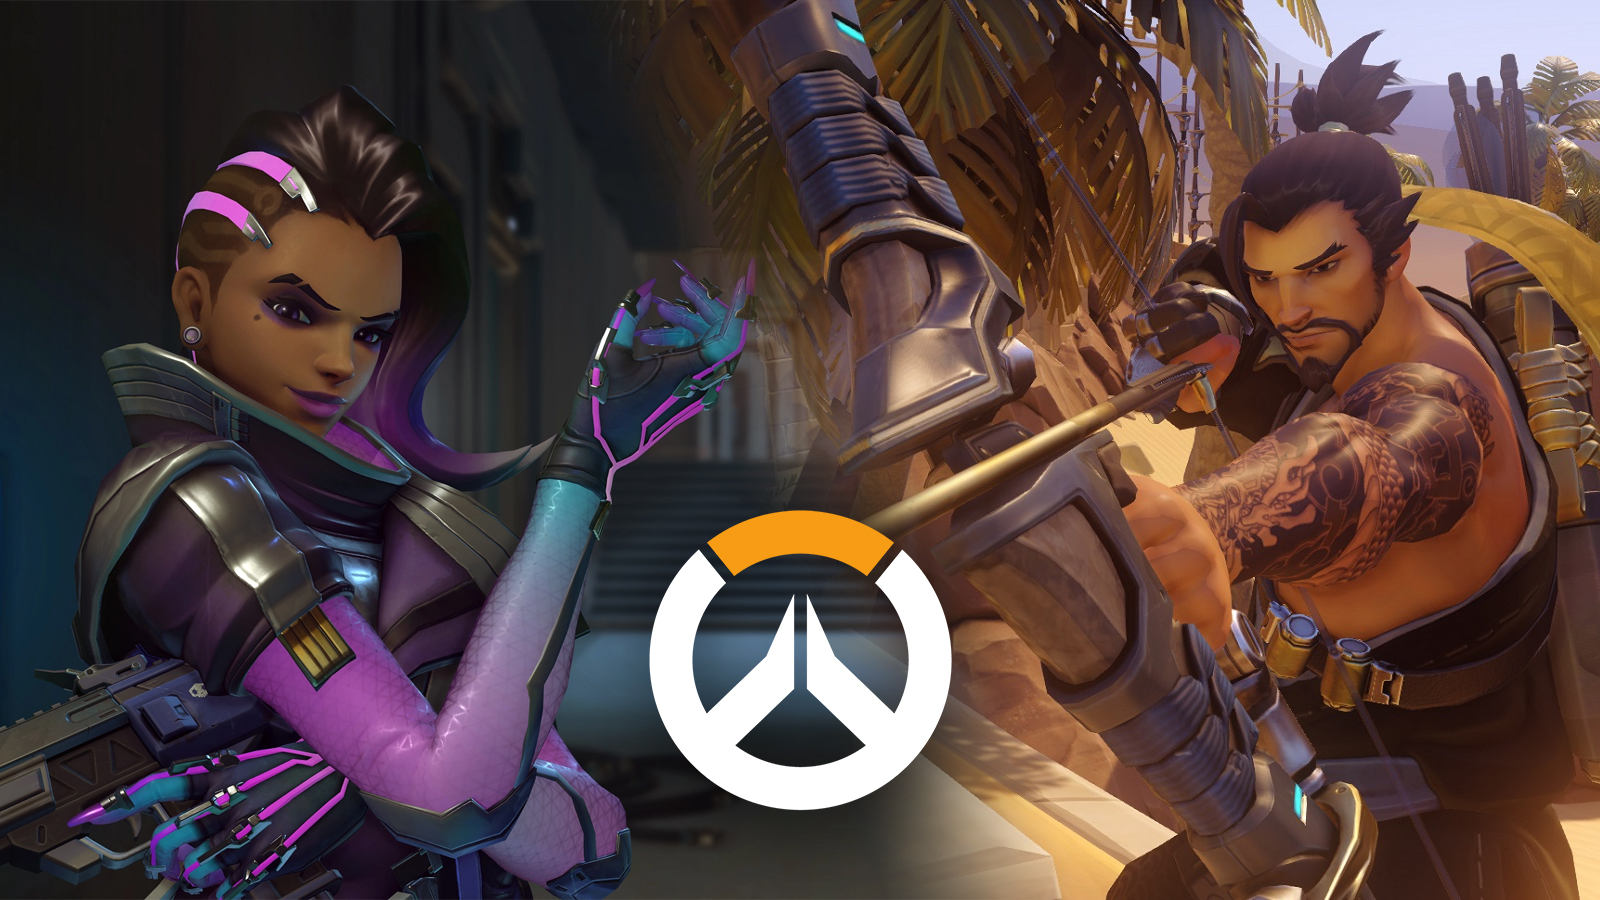 Sombra and Hanzo in Overwatch